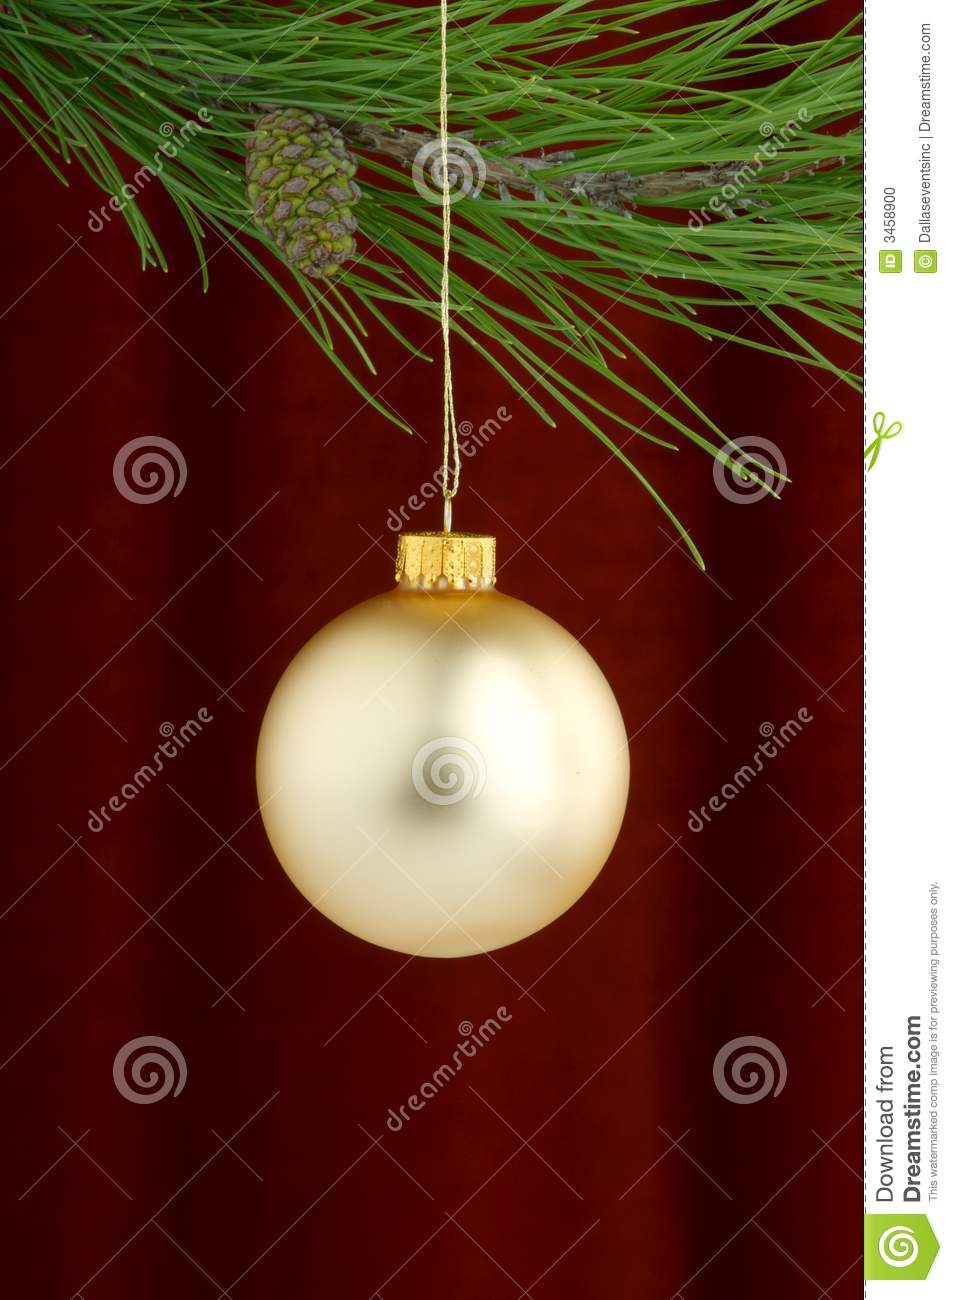 Gold Christmas Ornaments On Burgundy Background Stock Photo Image